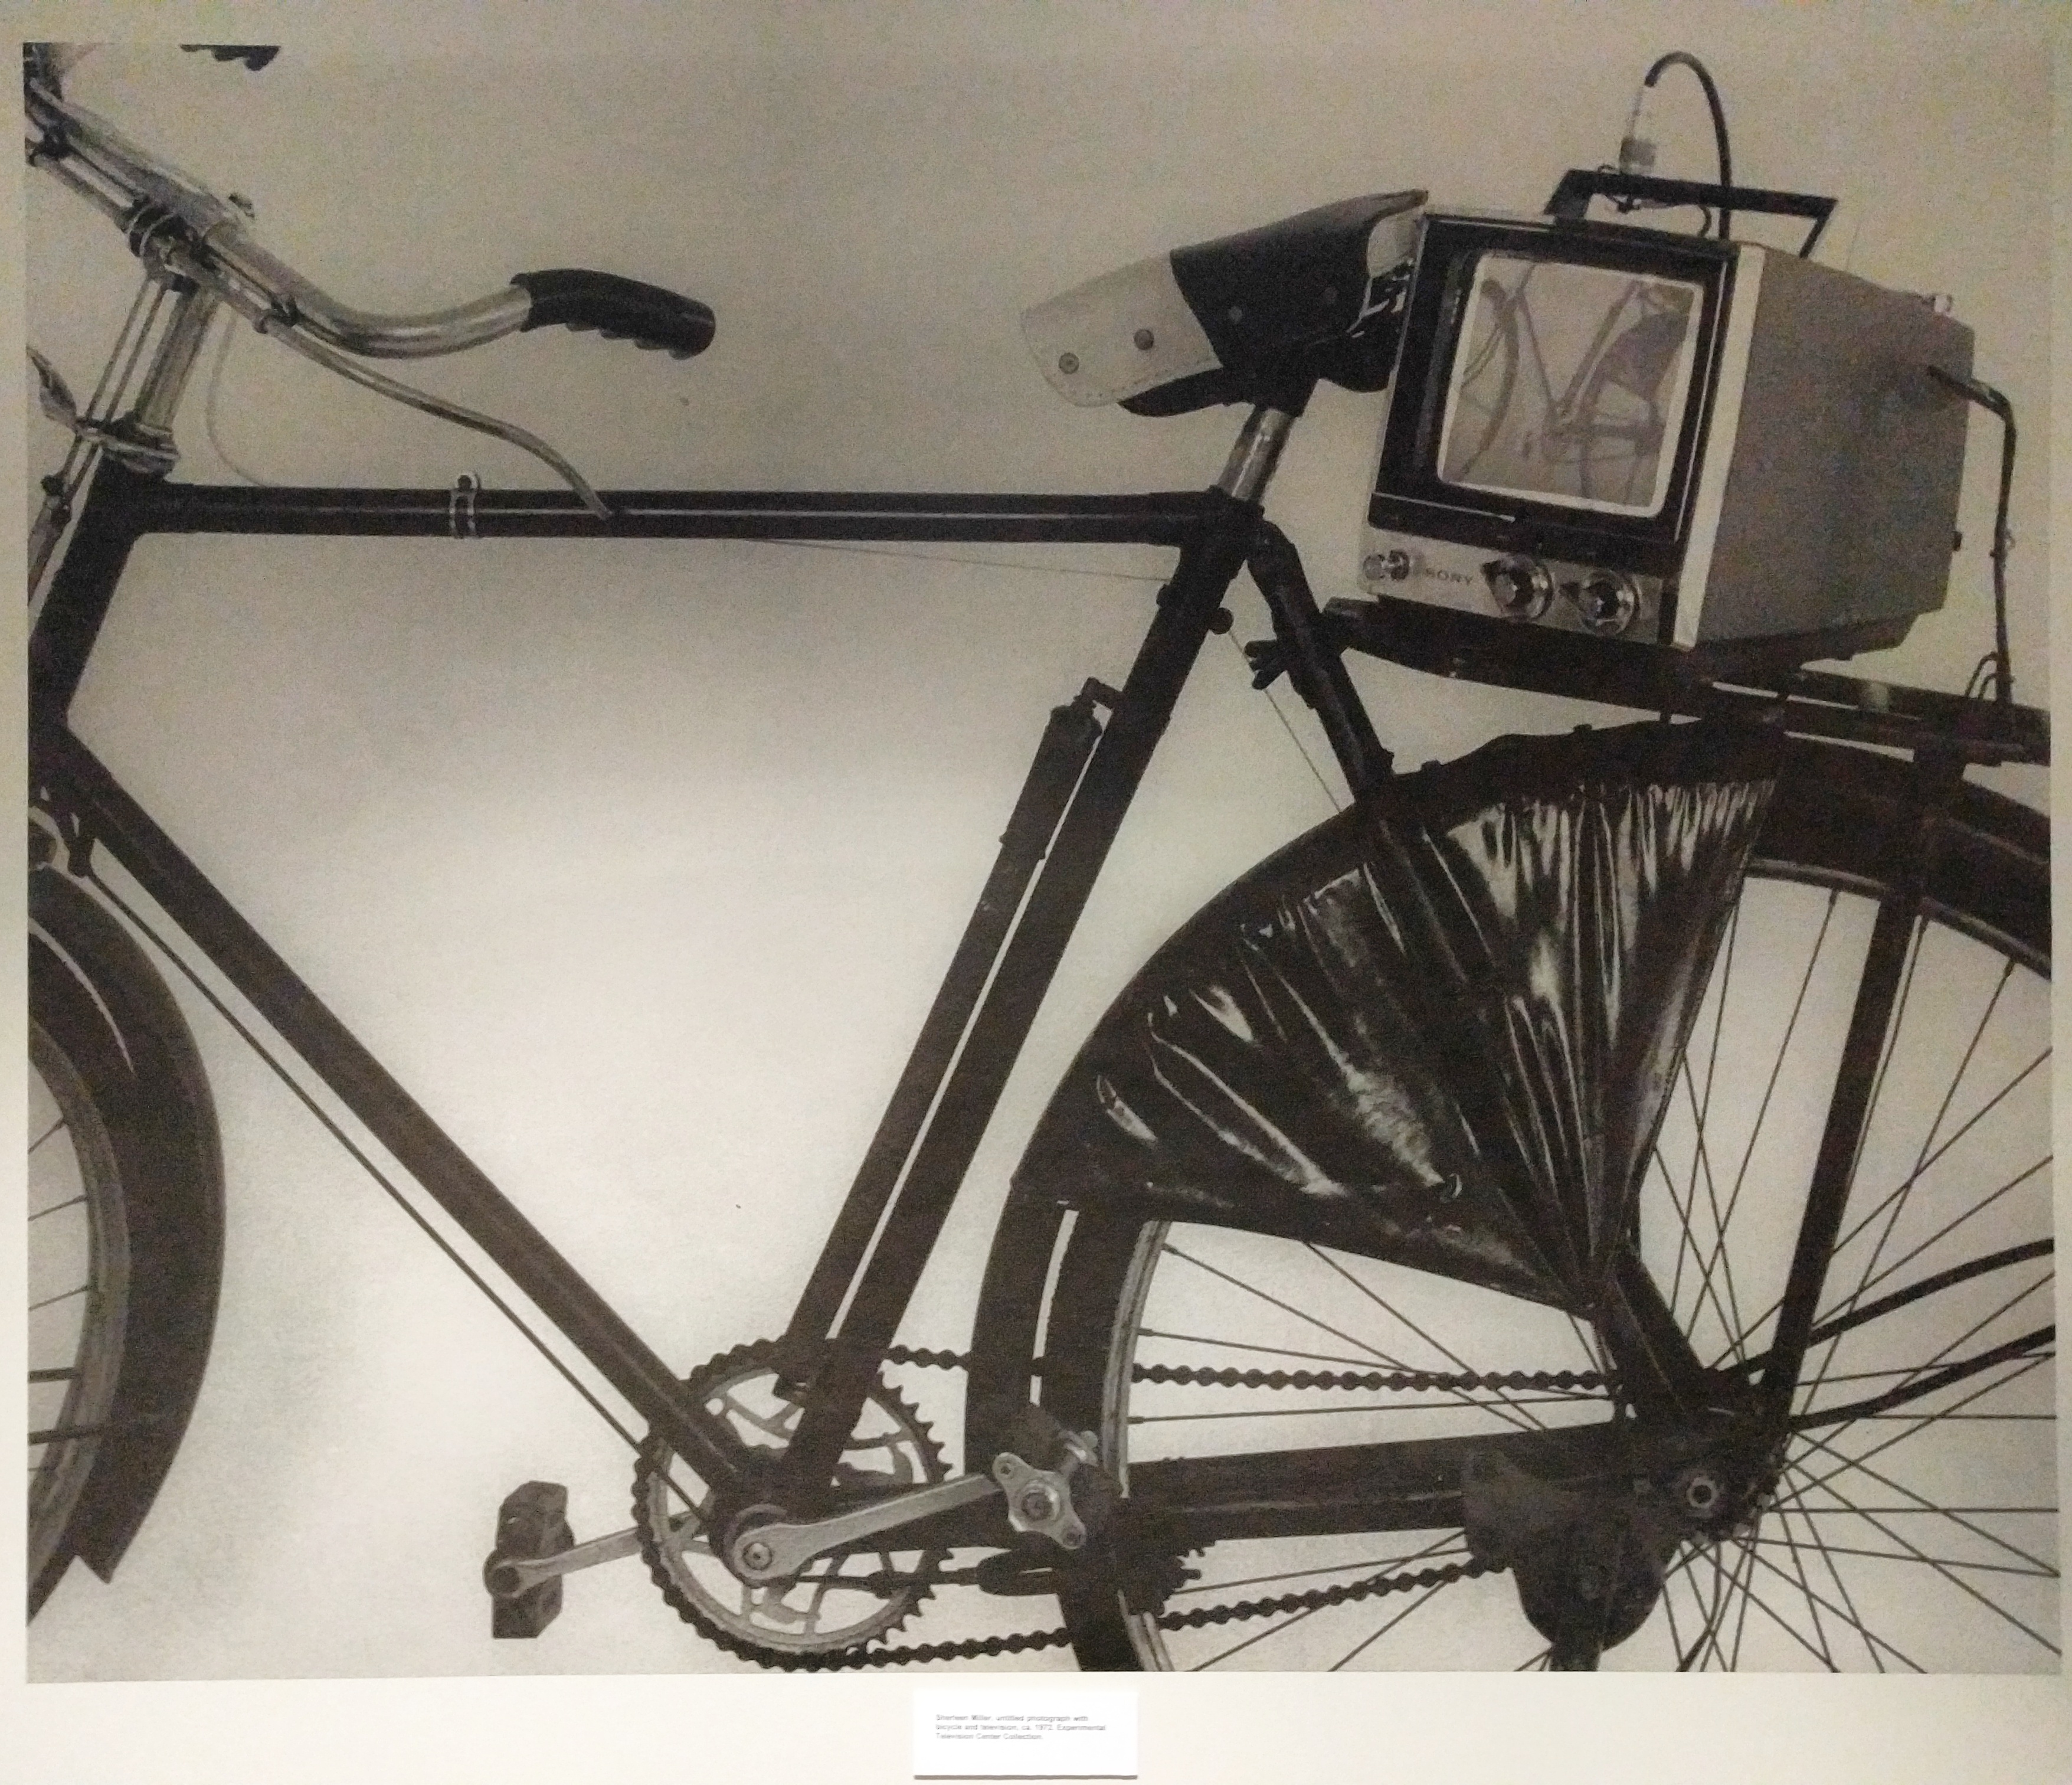 Black and white photo of a Sherry Miller Hocking media artwork: a bicycle with a portable CRTV attached to the back fender.